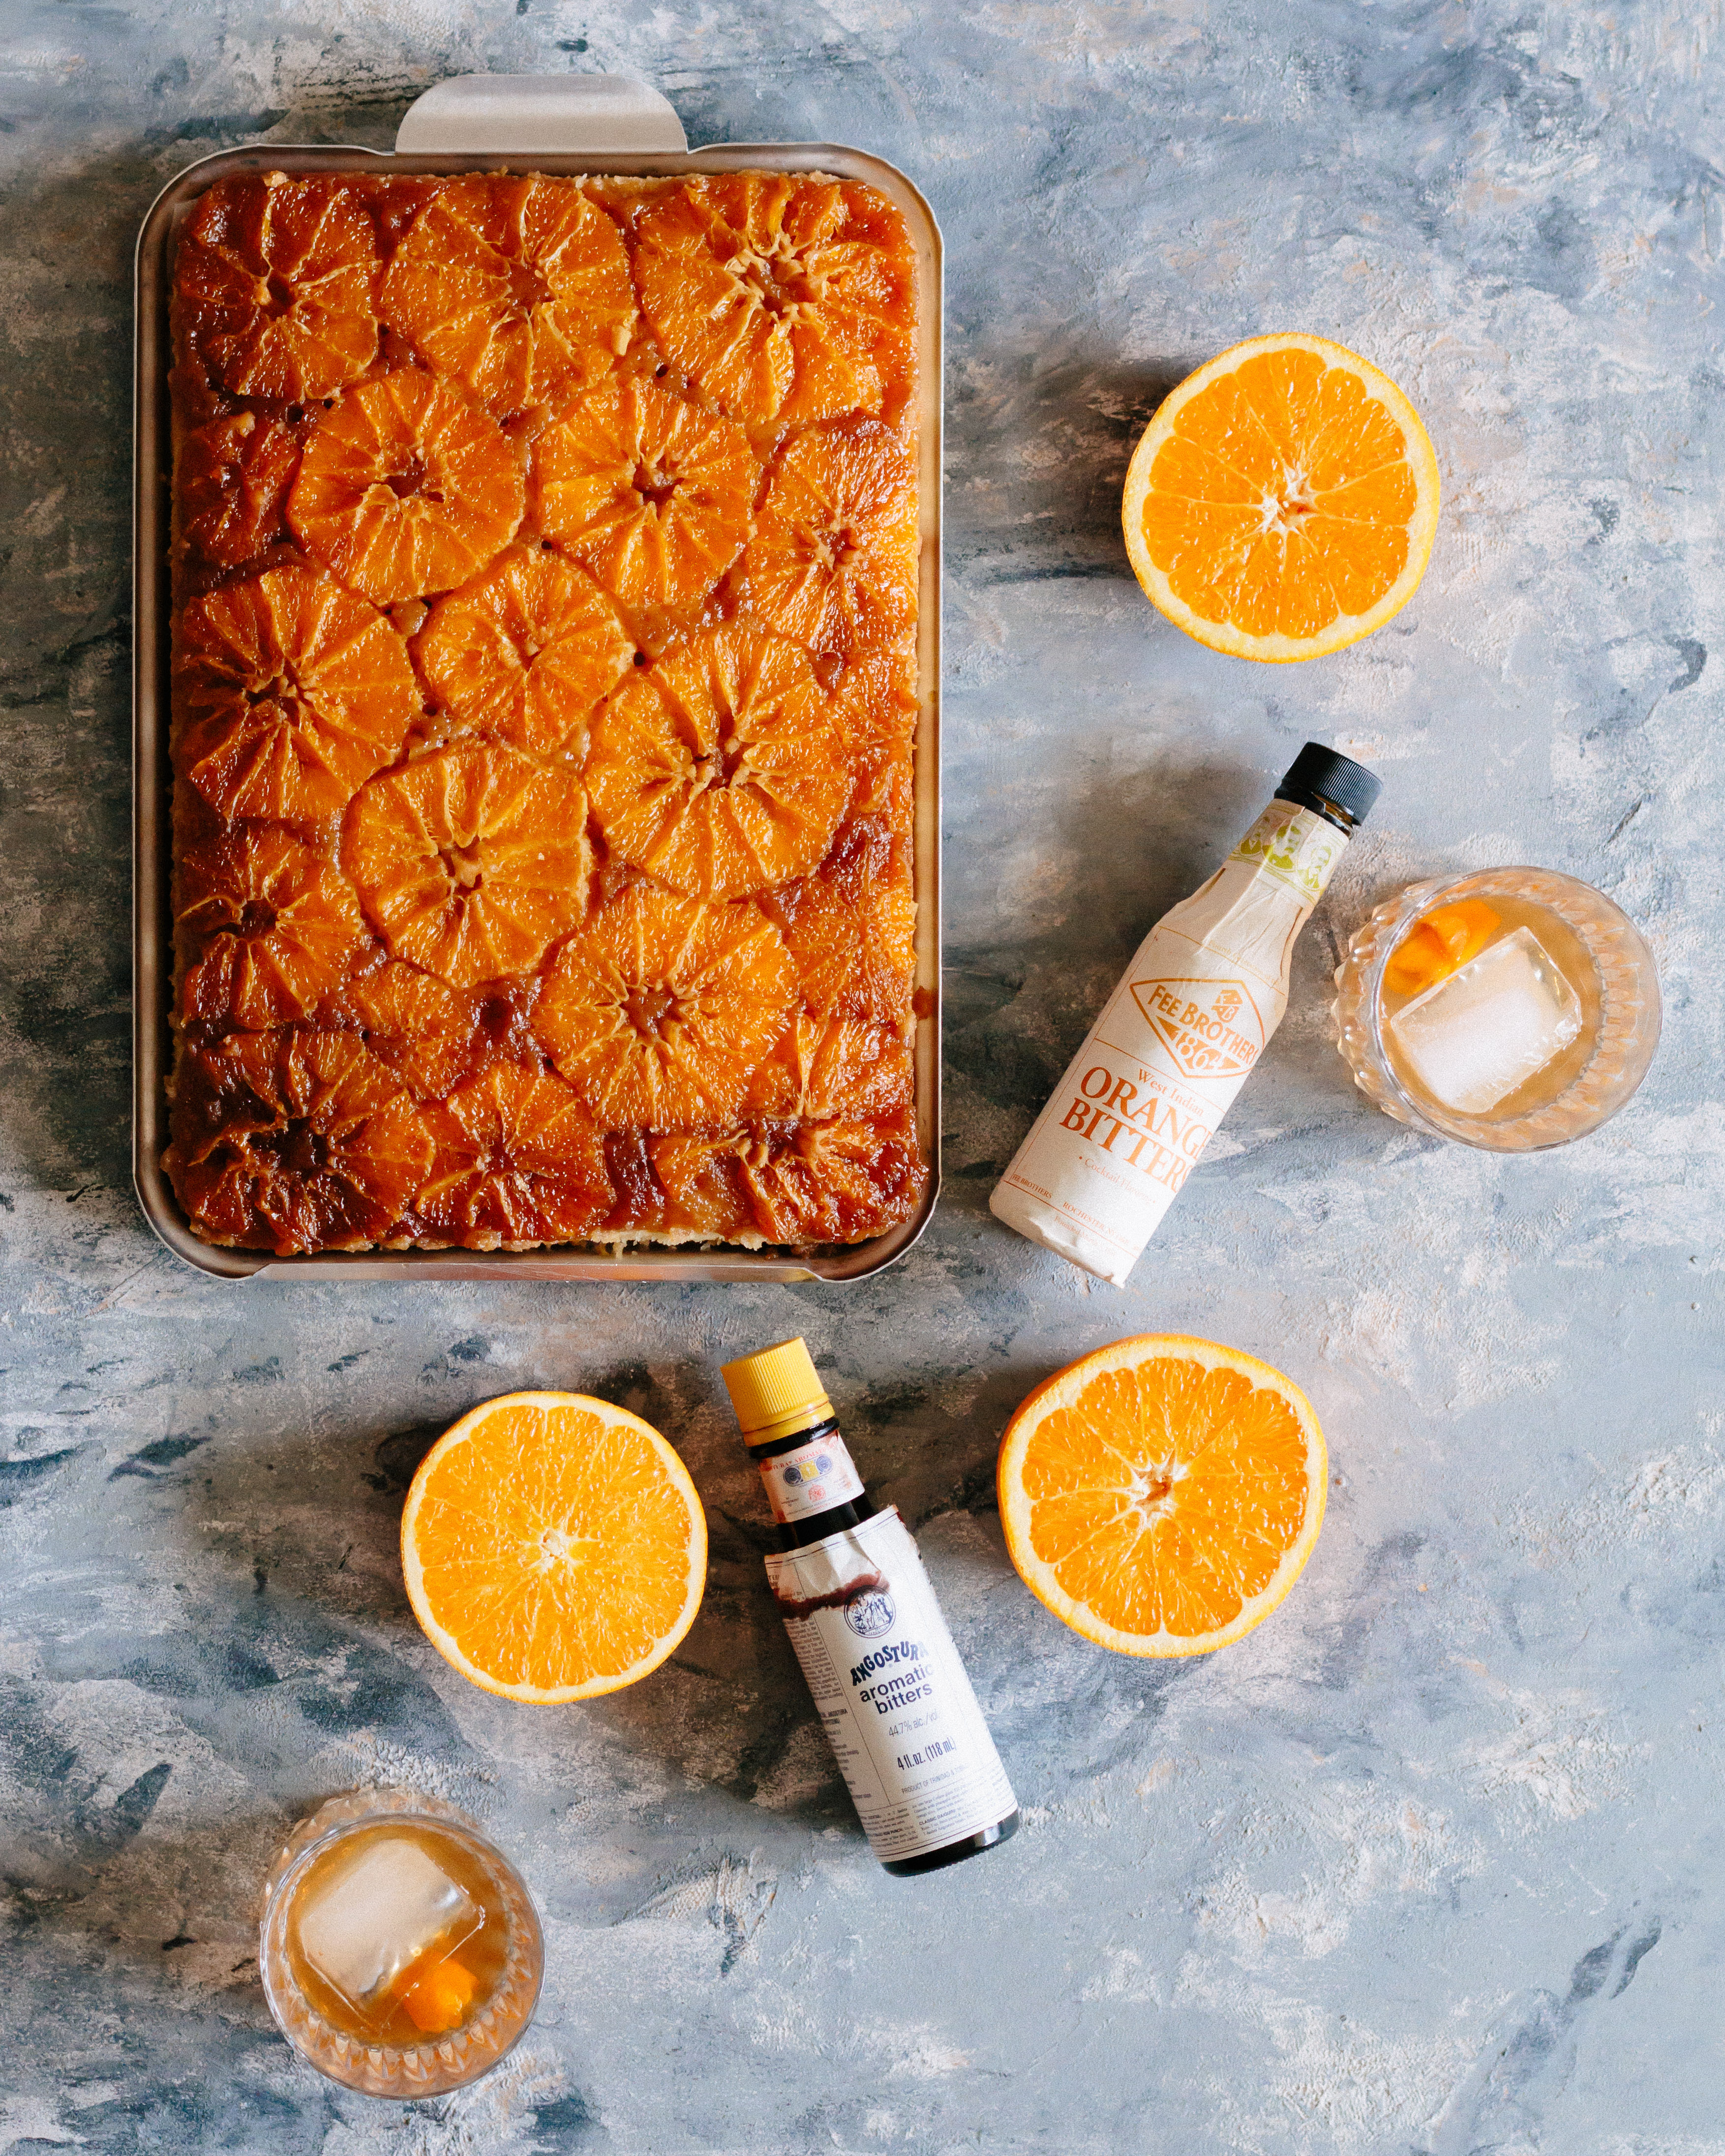 Overhead shot of uncut upside down cake still in the sheet pan surrounded by three orange halves, an orange bitters bottle, an Angostura Bitters bottle, and two Old Fashioneds in rocks glasses.